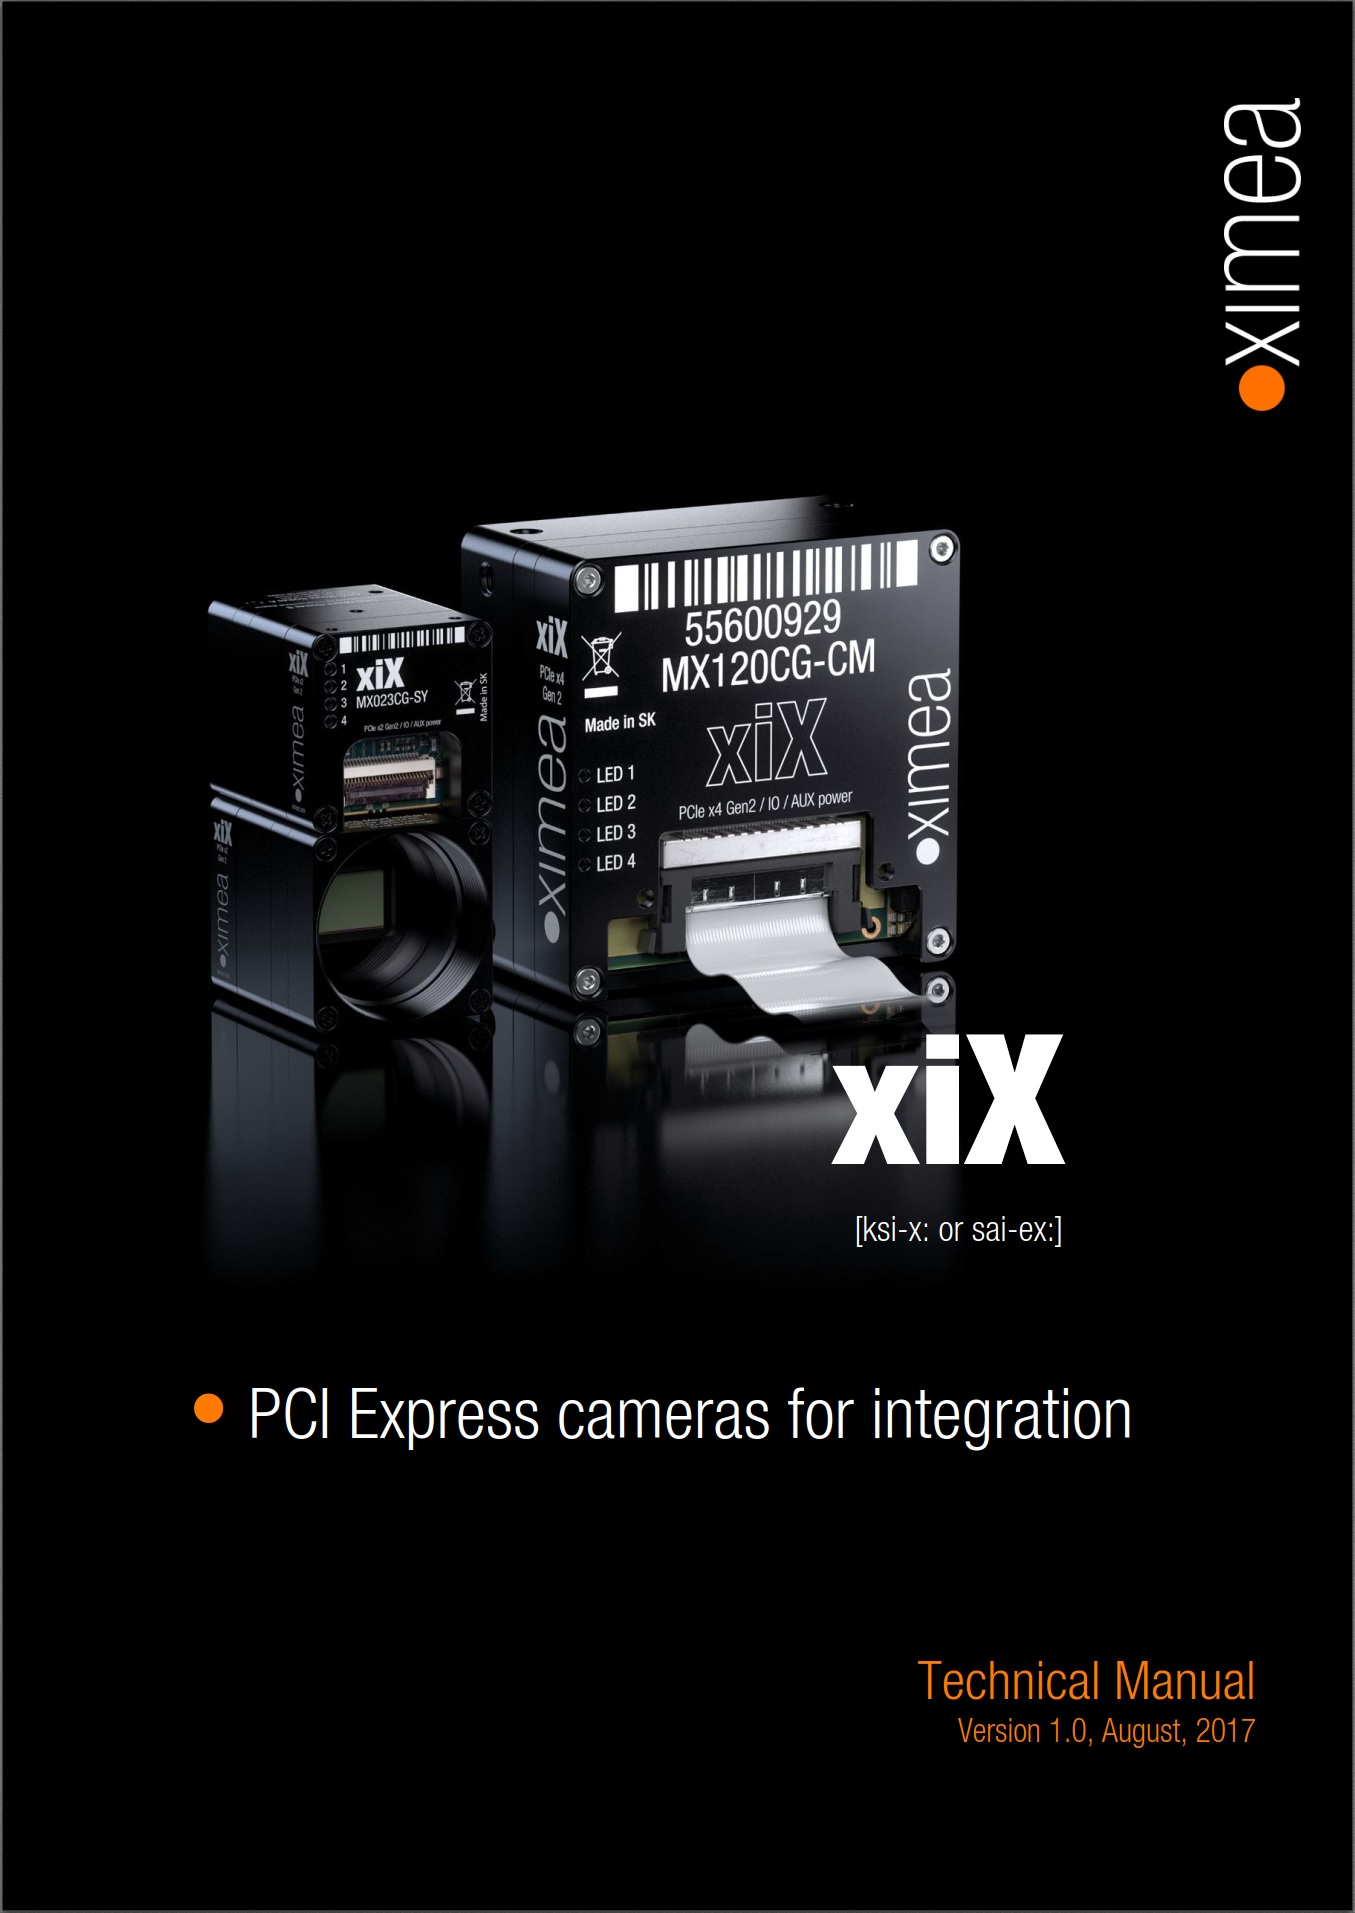 XIMEA - Embedded vision and multi-camera setup - xiX